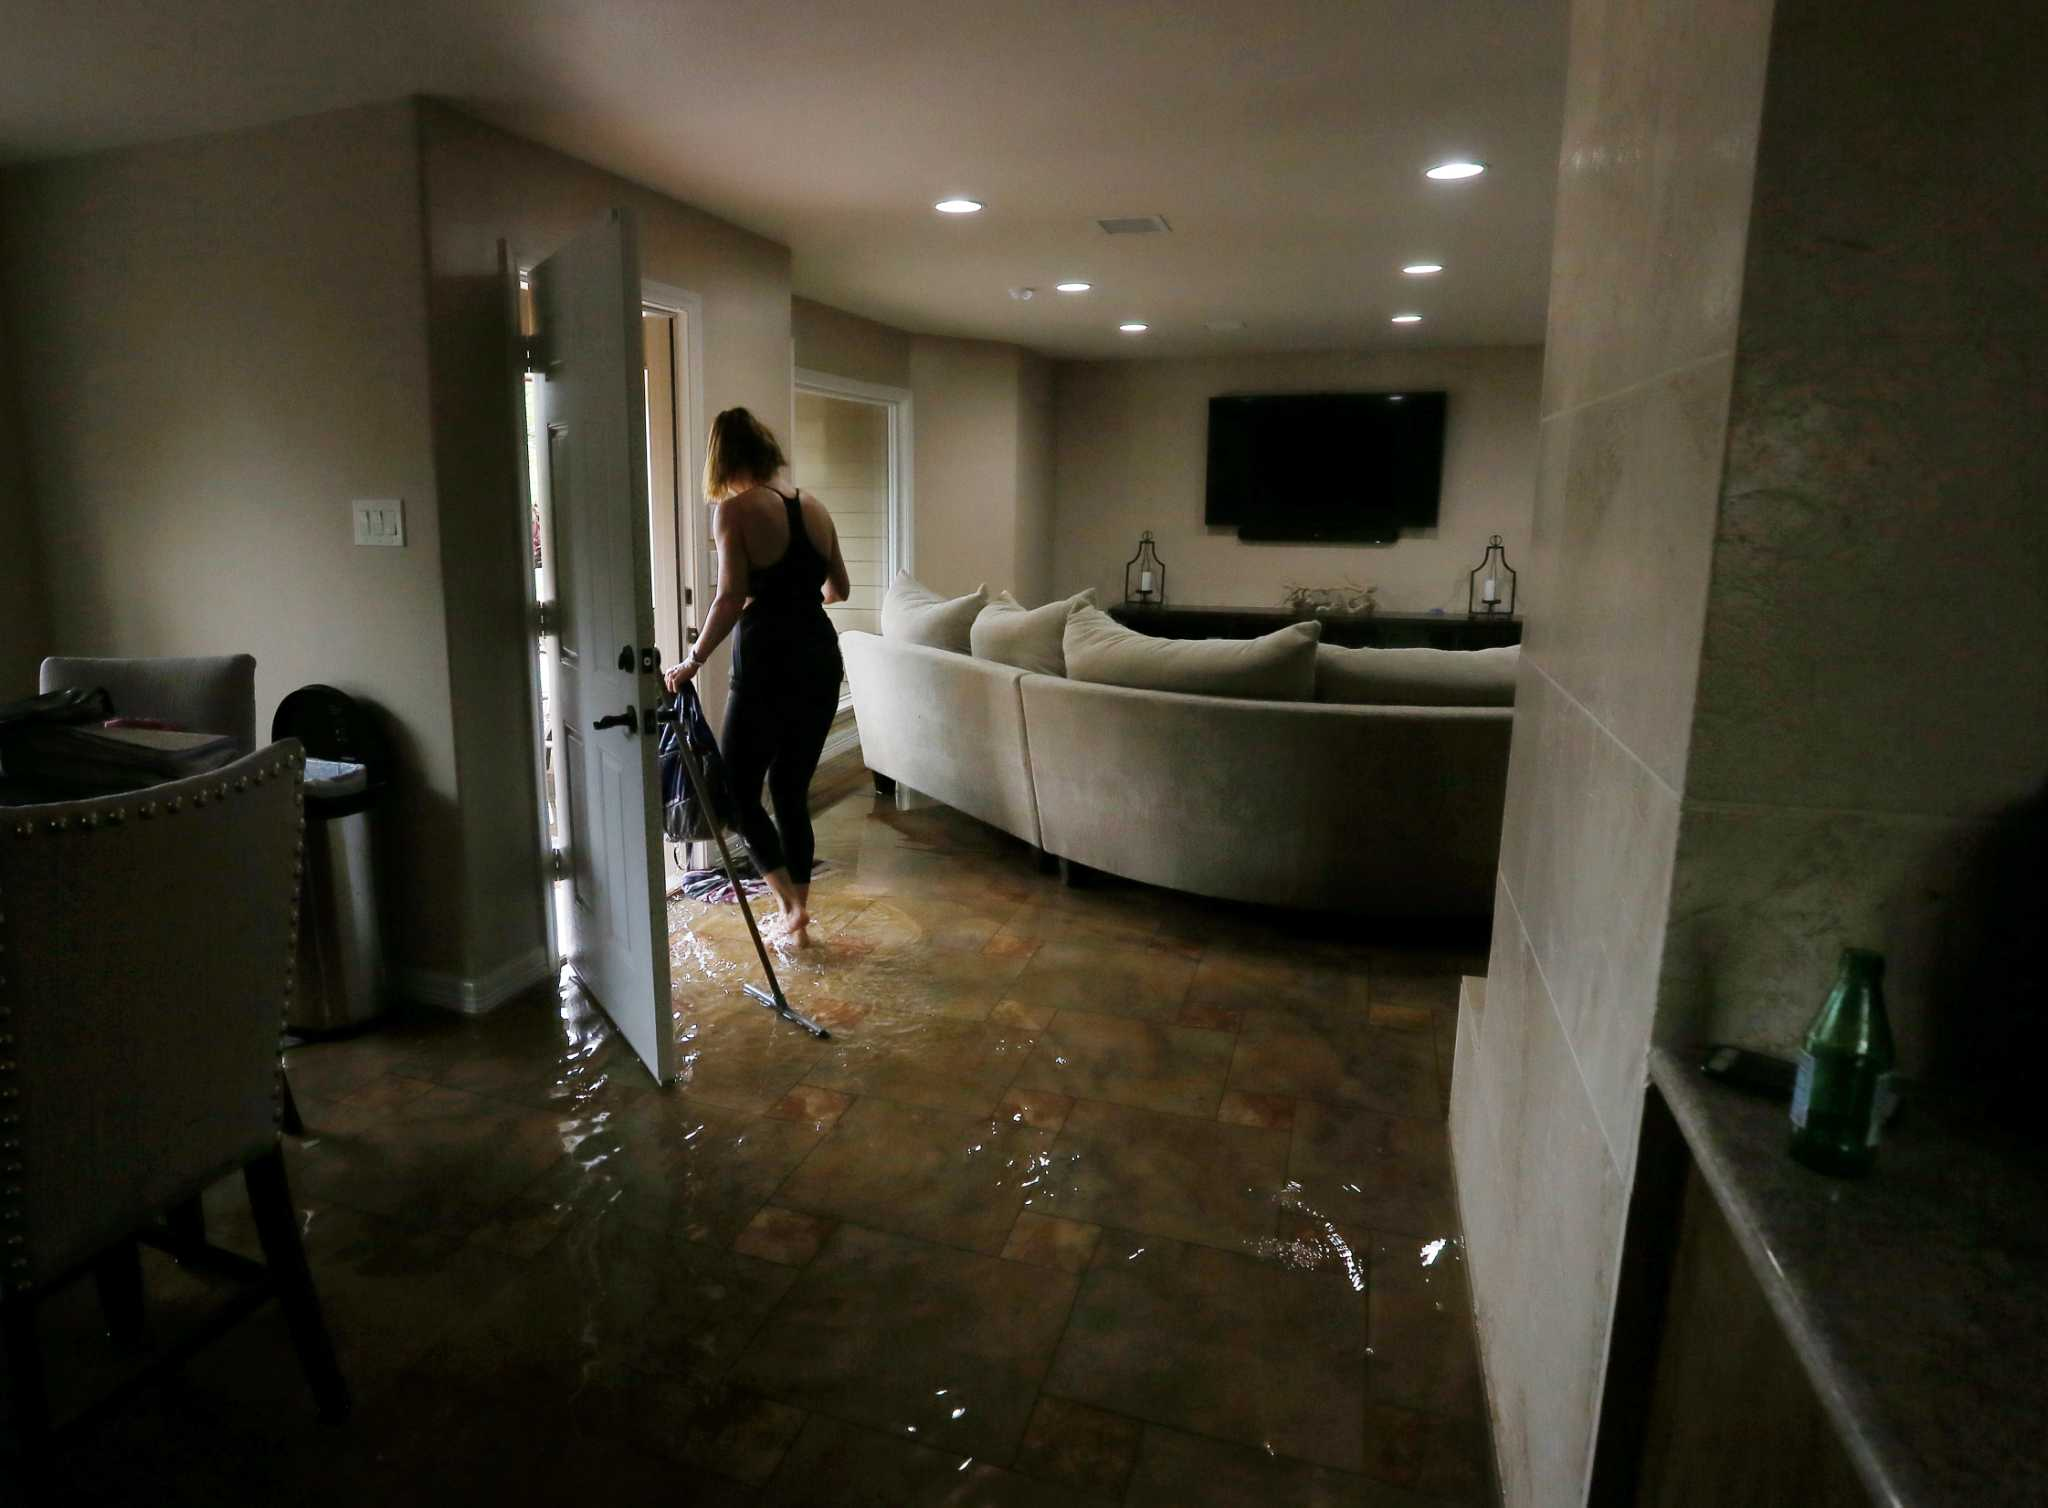 Getting flood insurance money may be next hurdle - Houston